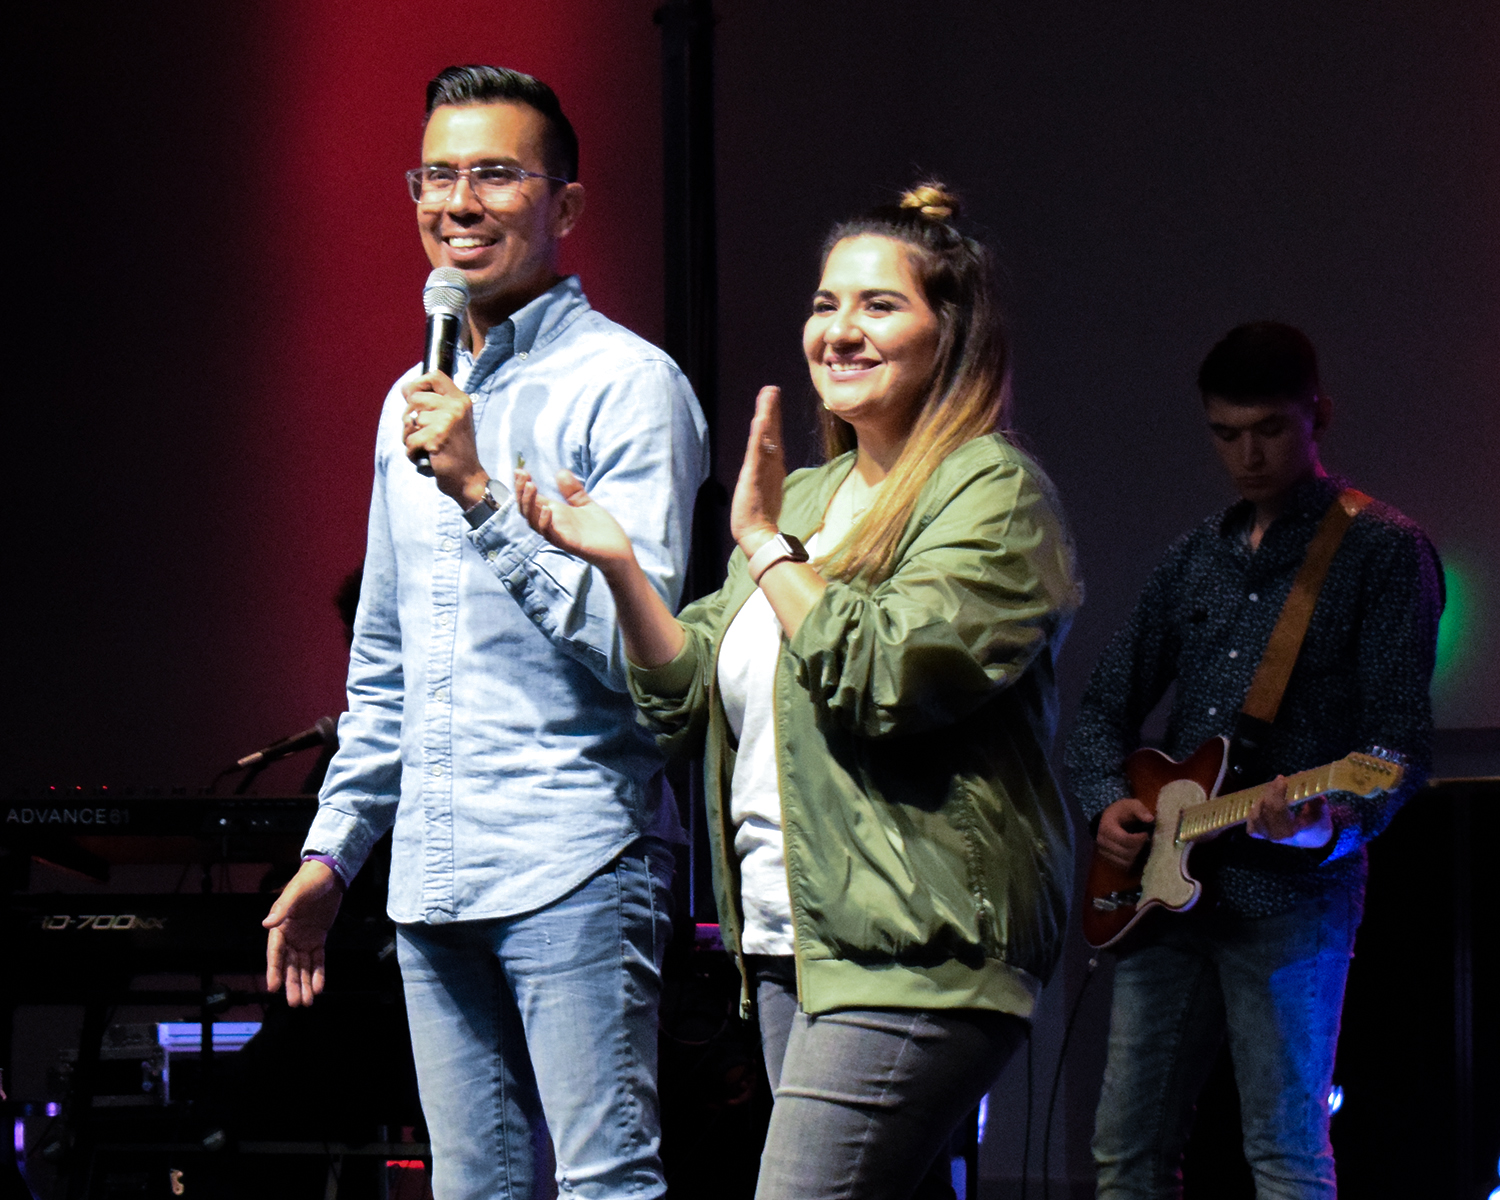 Abram & Rebecca Gomez - Executive PastorsAbram Gomez is the Executive Pastor at Cross Church in San Benito, TX. He serves under the leadership of Bishop Jaime Loya and helps in leading over 3000-member congregation.In 2006, Abram joined the team and staff at Cross Church formally known as VICC and began to serve as the Senior Youth Pastor. Under his leadership, the youth ministry flourished going from a group of 15 teens to more than 300 being served on a weekly basis through student services and outreach. At this time, he and his wife, Rebecca Gomez, are also the Campus Pastors for our McAllen Campus which we have seen hundreds of people being impacted by the impactful preaching and excellence in leadership.Abram has served in other various roles such a Church Planting, Pastoral Preaching Team, and Administrator to name a few, and has helped to create church systems and structure to accommodate the growth.He and his wife, Rebecca, reside in Harlingen along with their precious daughter Isabella and son Jude.